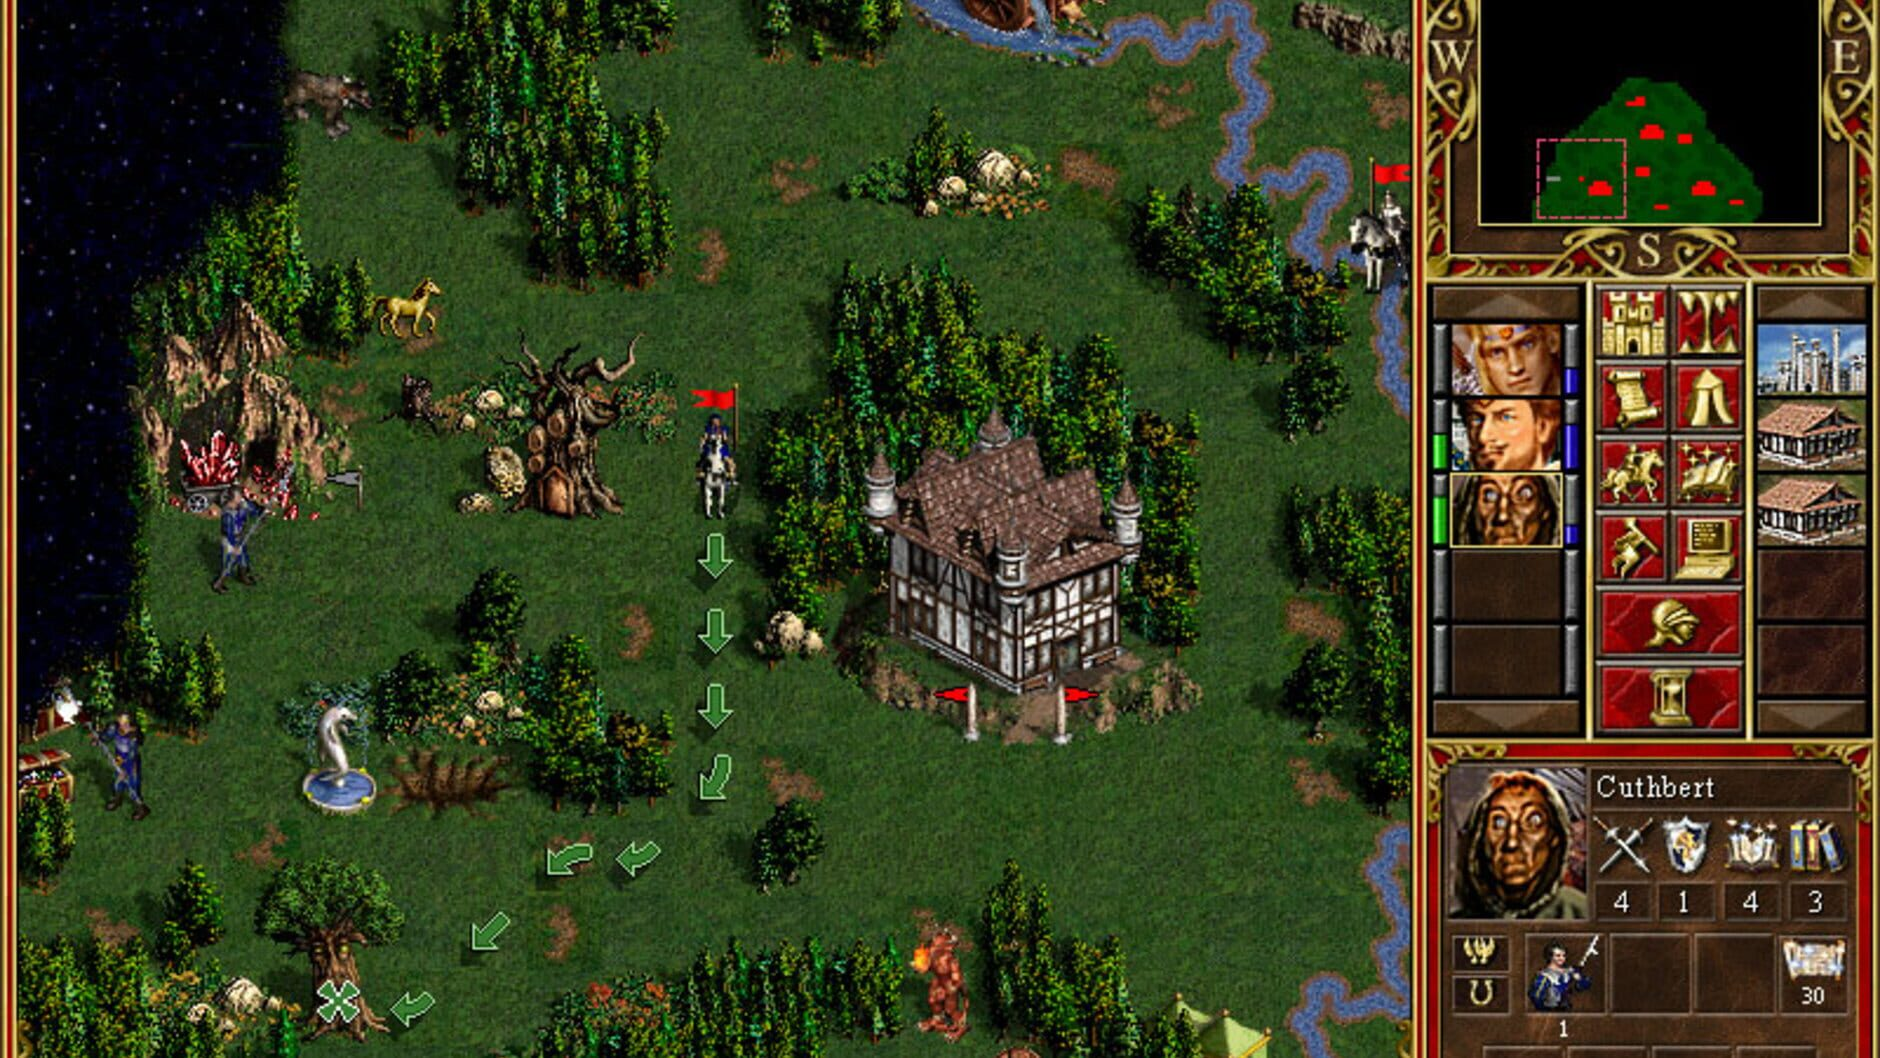 Heroes of Might and Magic III: The Restoration of Erathia - 3